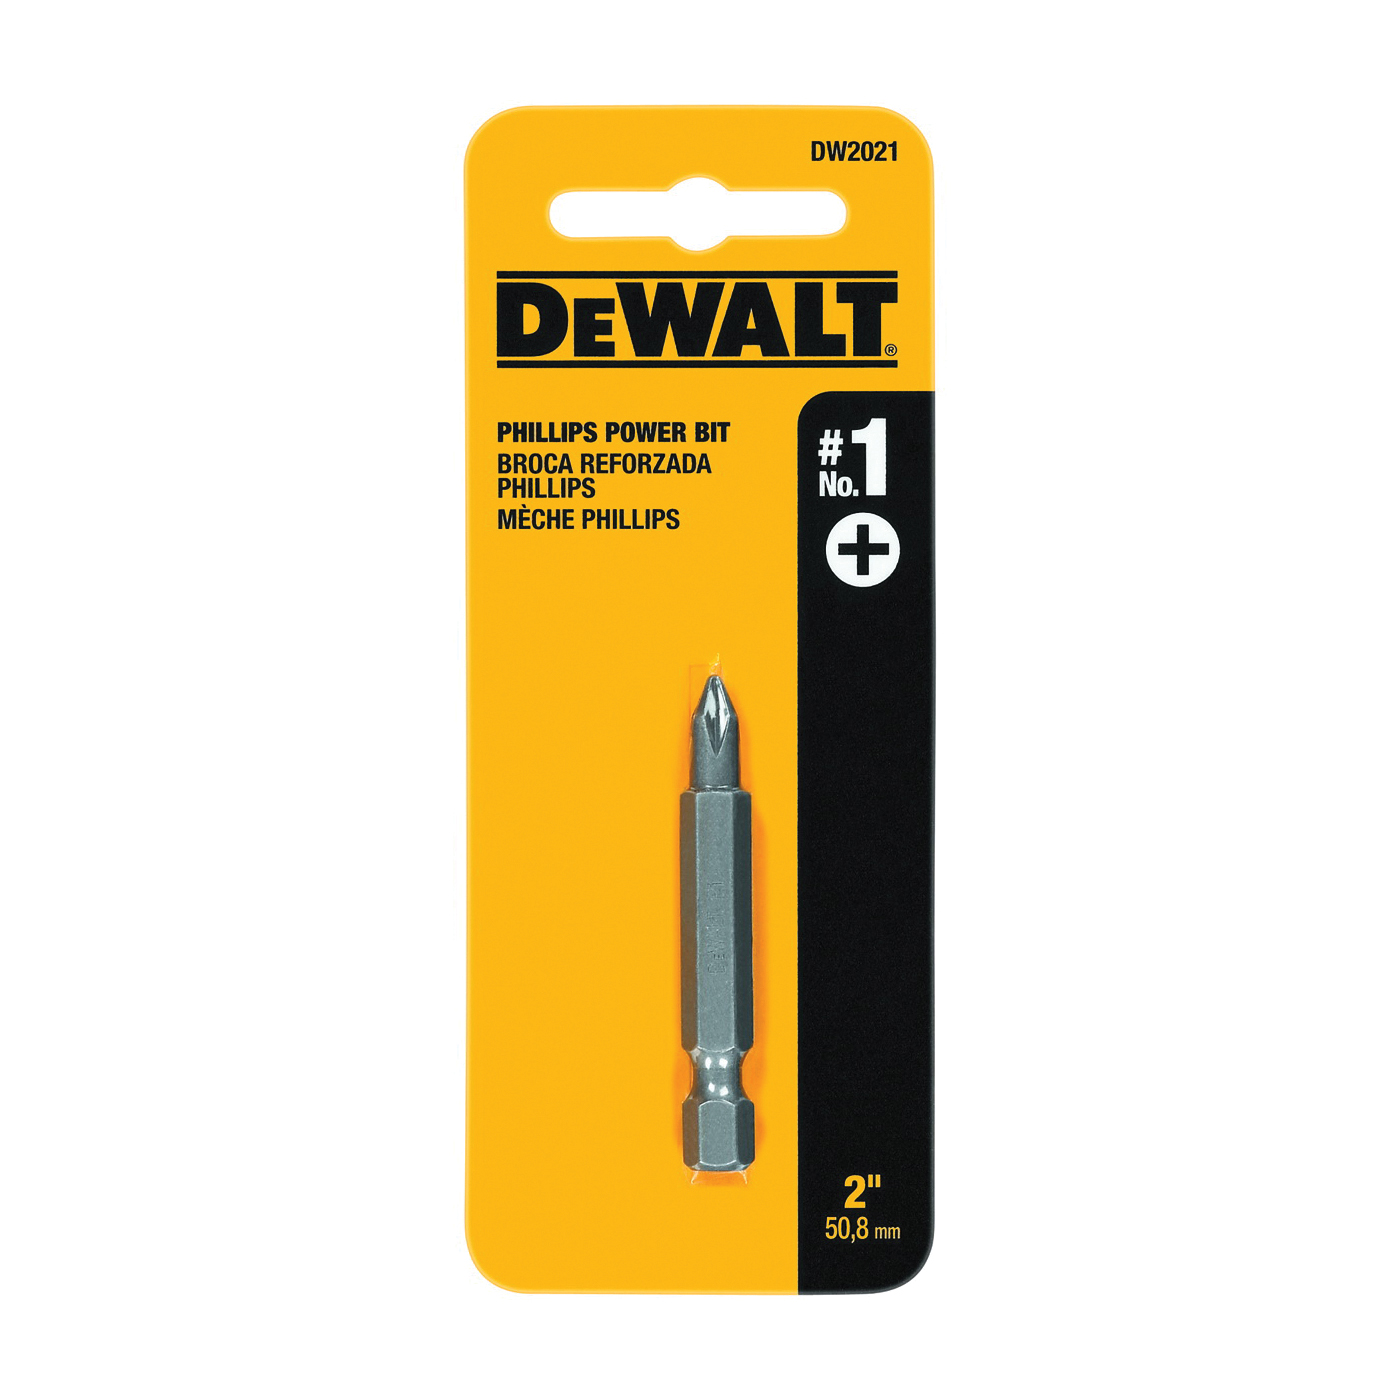 Picture of DeWALT DW2021 Power Bit, #1 Drive, Phillips Drive, 1/4 in Shank, Hex Shank, 2 in L, Tool Steel